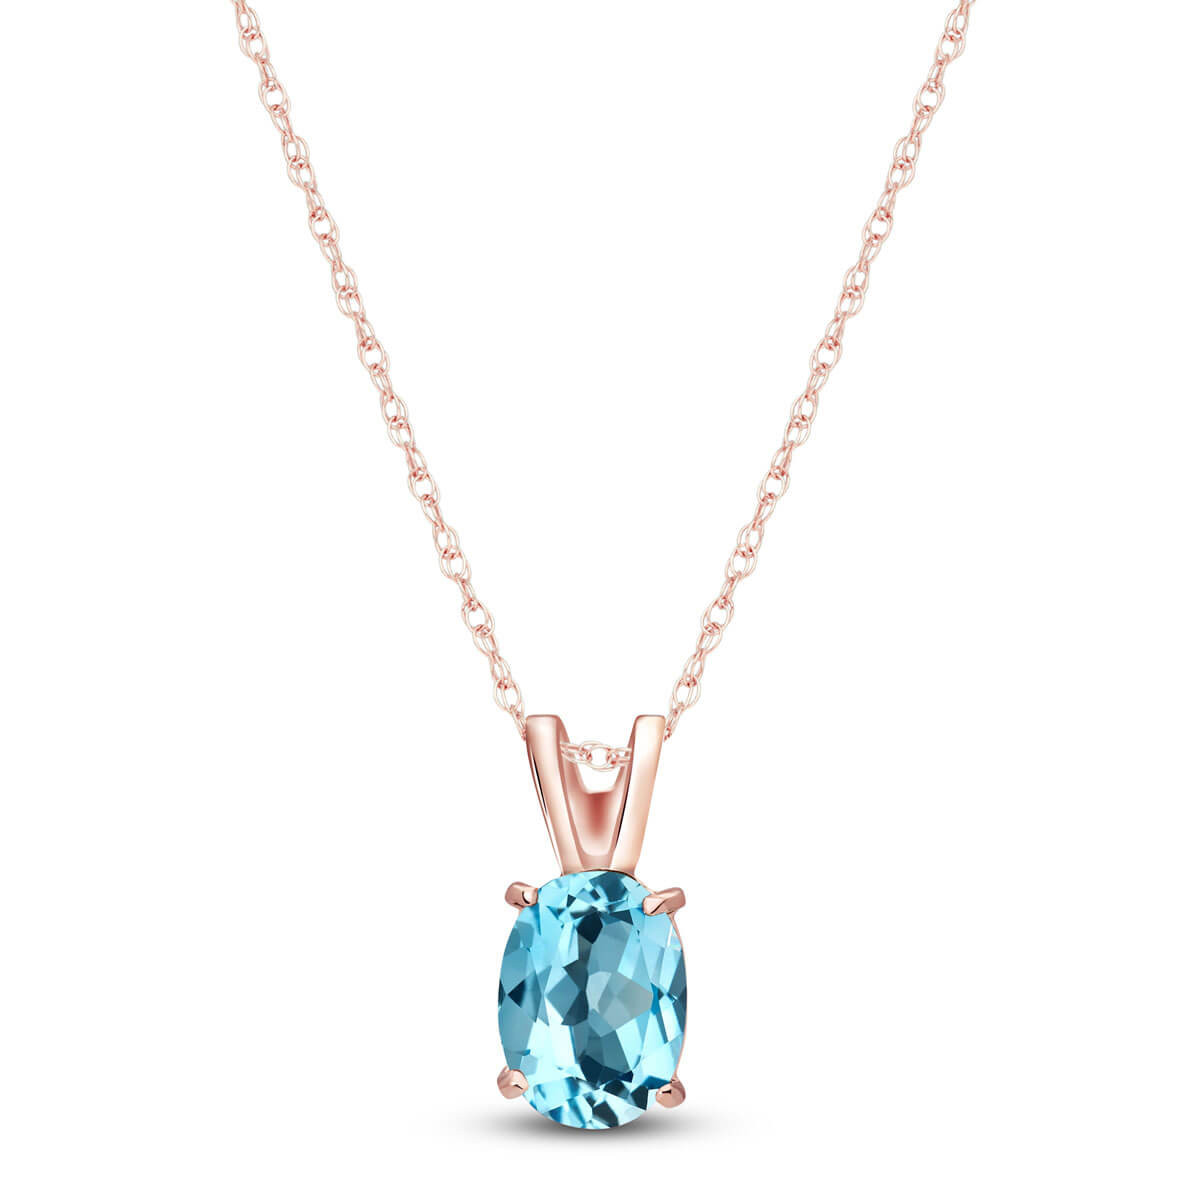 Blue Topaz Oval Pendant Necklace 0.85 ct in 9ct Rose Gold